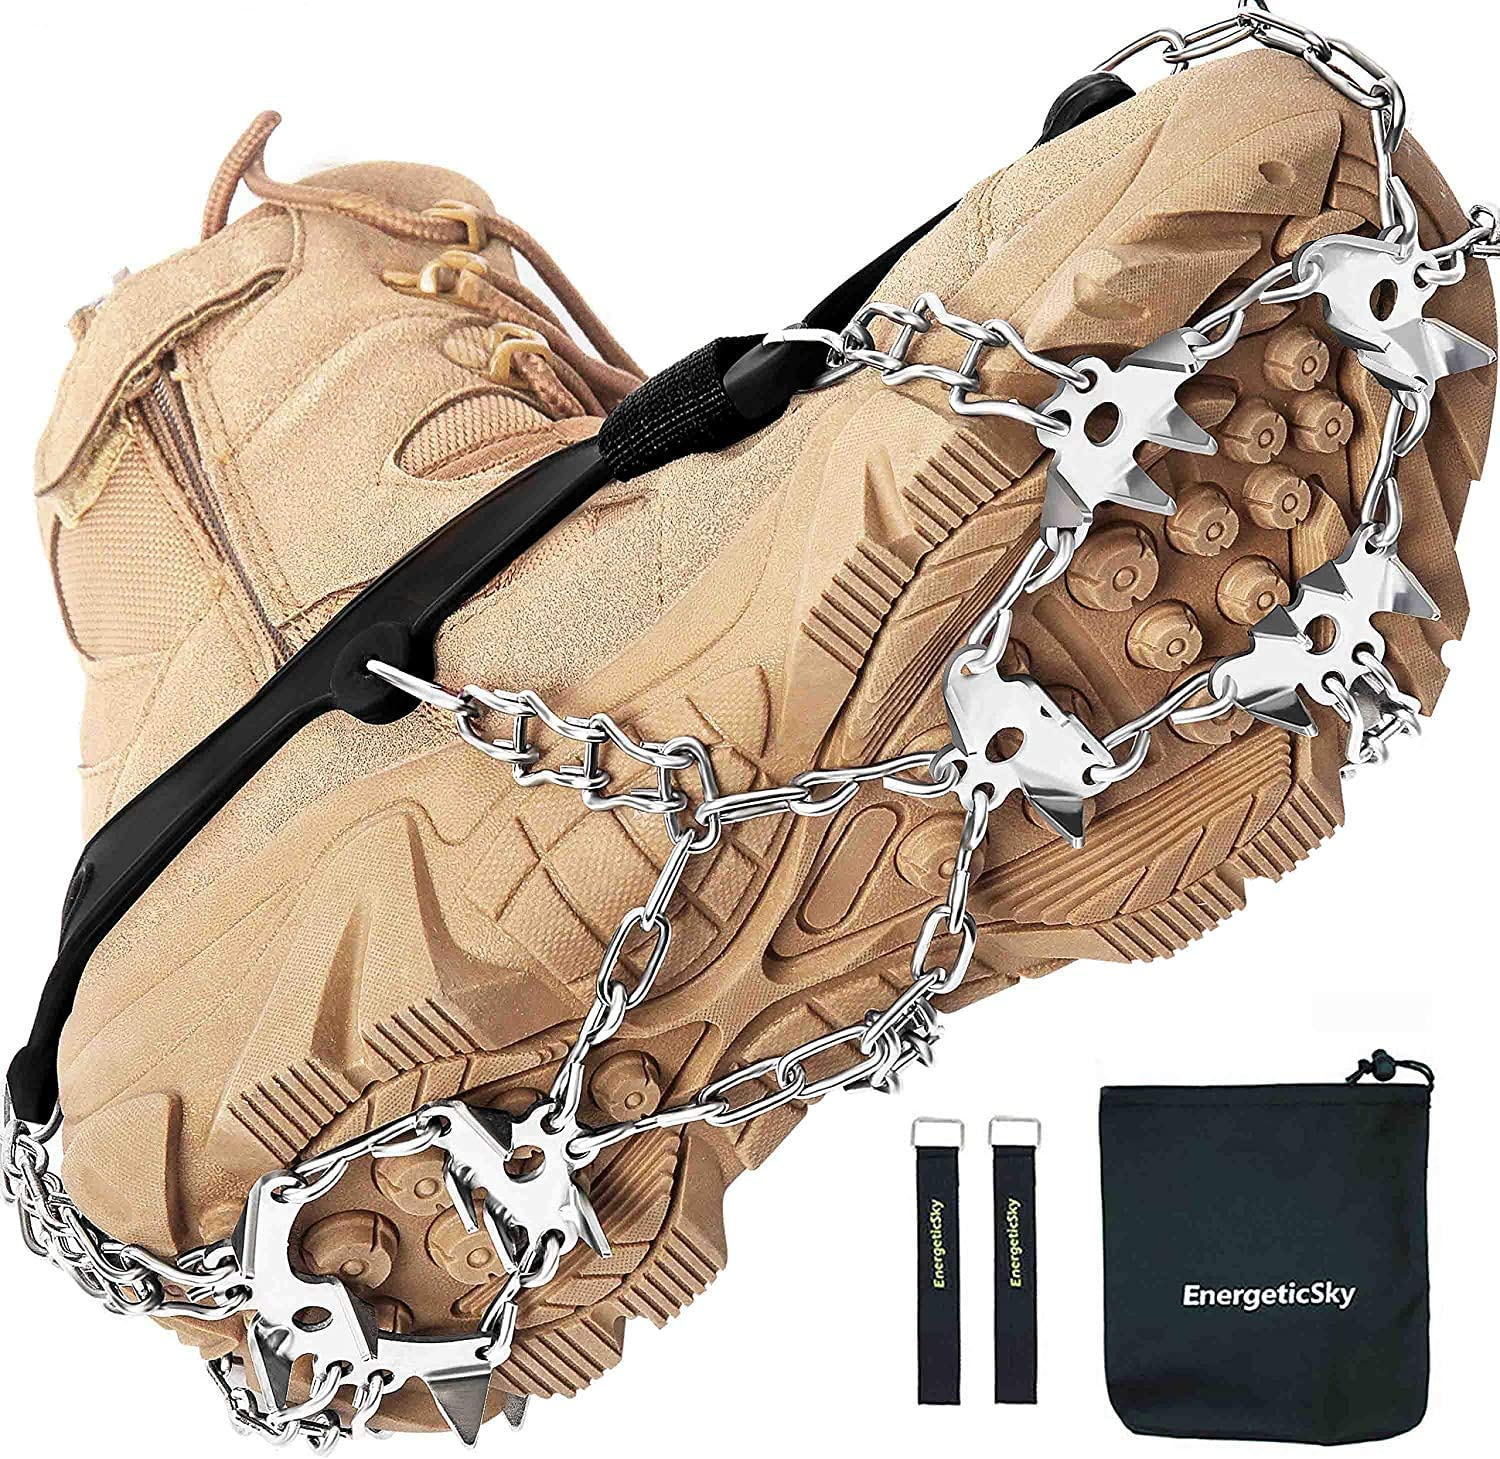 Austin Mall EnergeticSky 24 Spikes Crampons Limited Special Price Ice Grips f Cleats Traction Snow